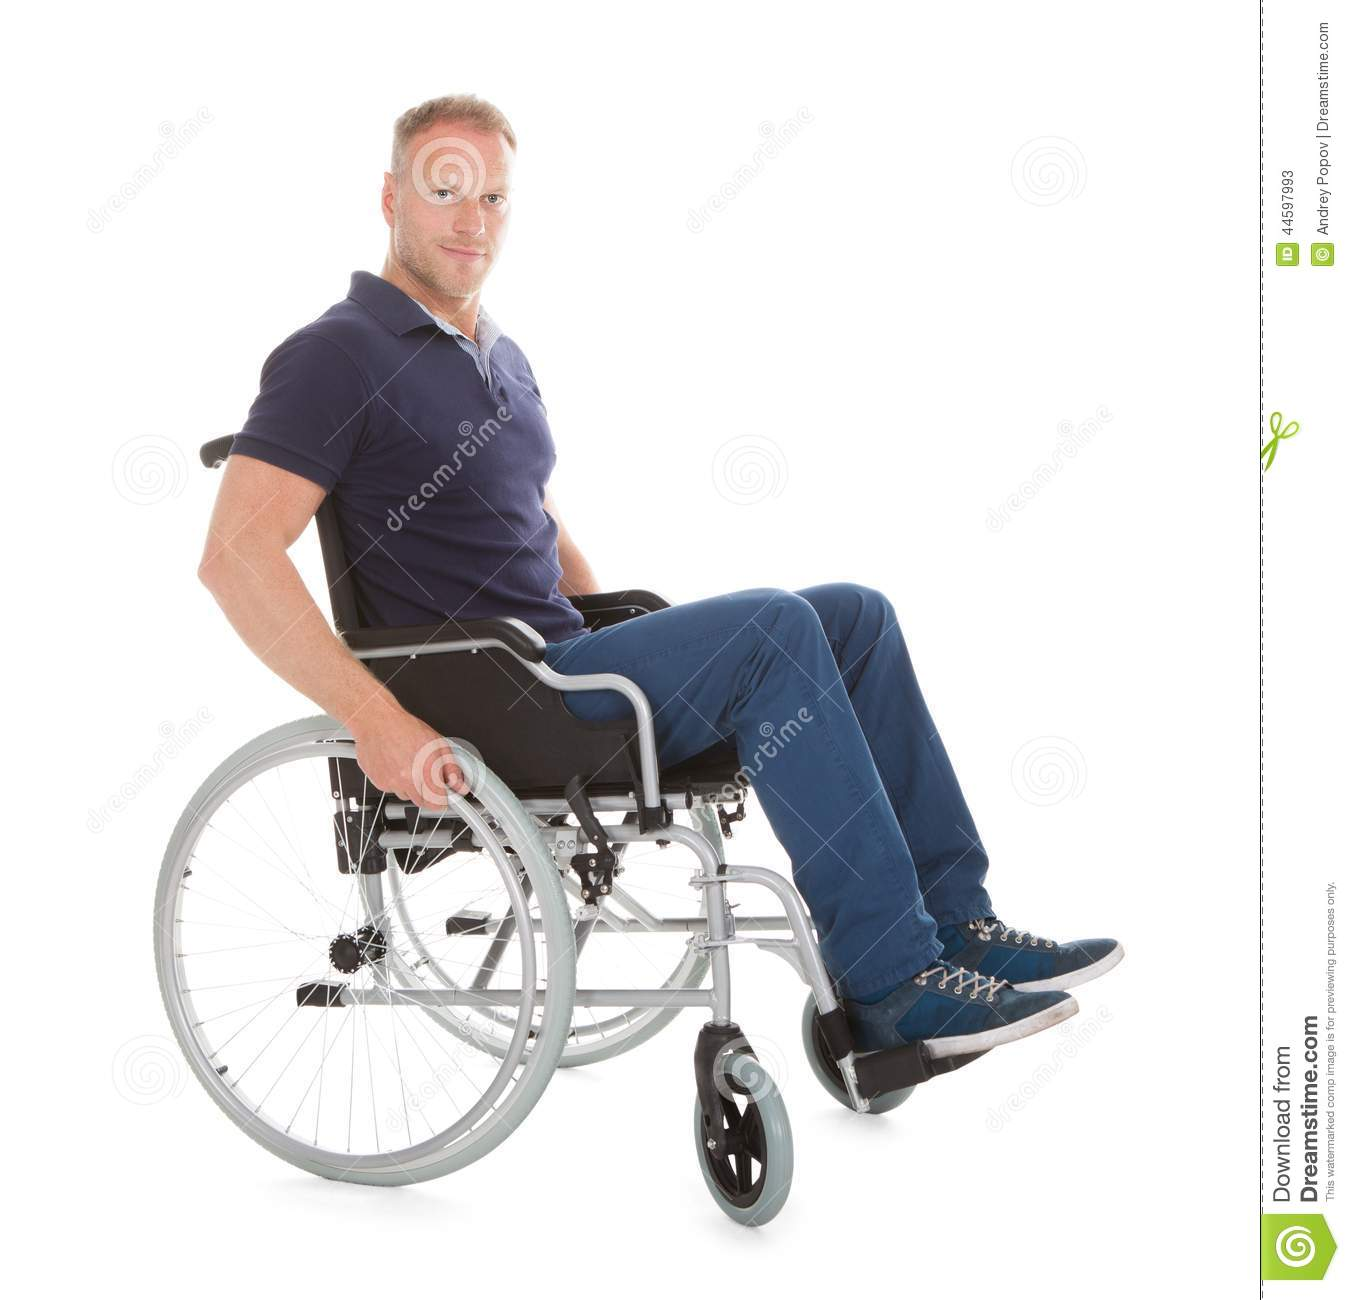 wheelchair man posture right chair portrait of disabled on stock image cutout full length over white background